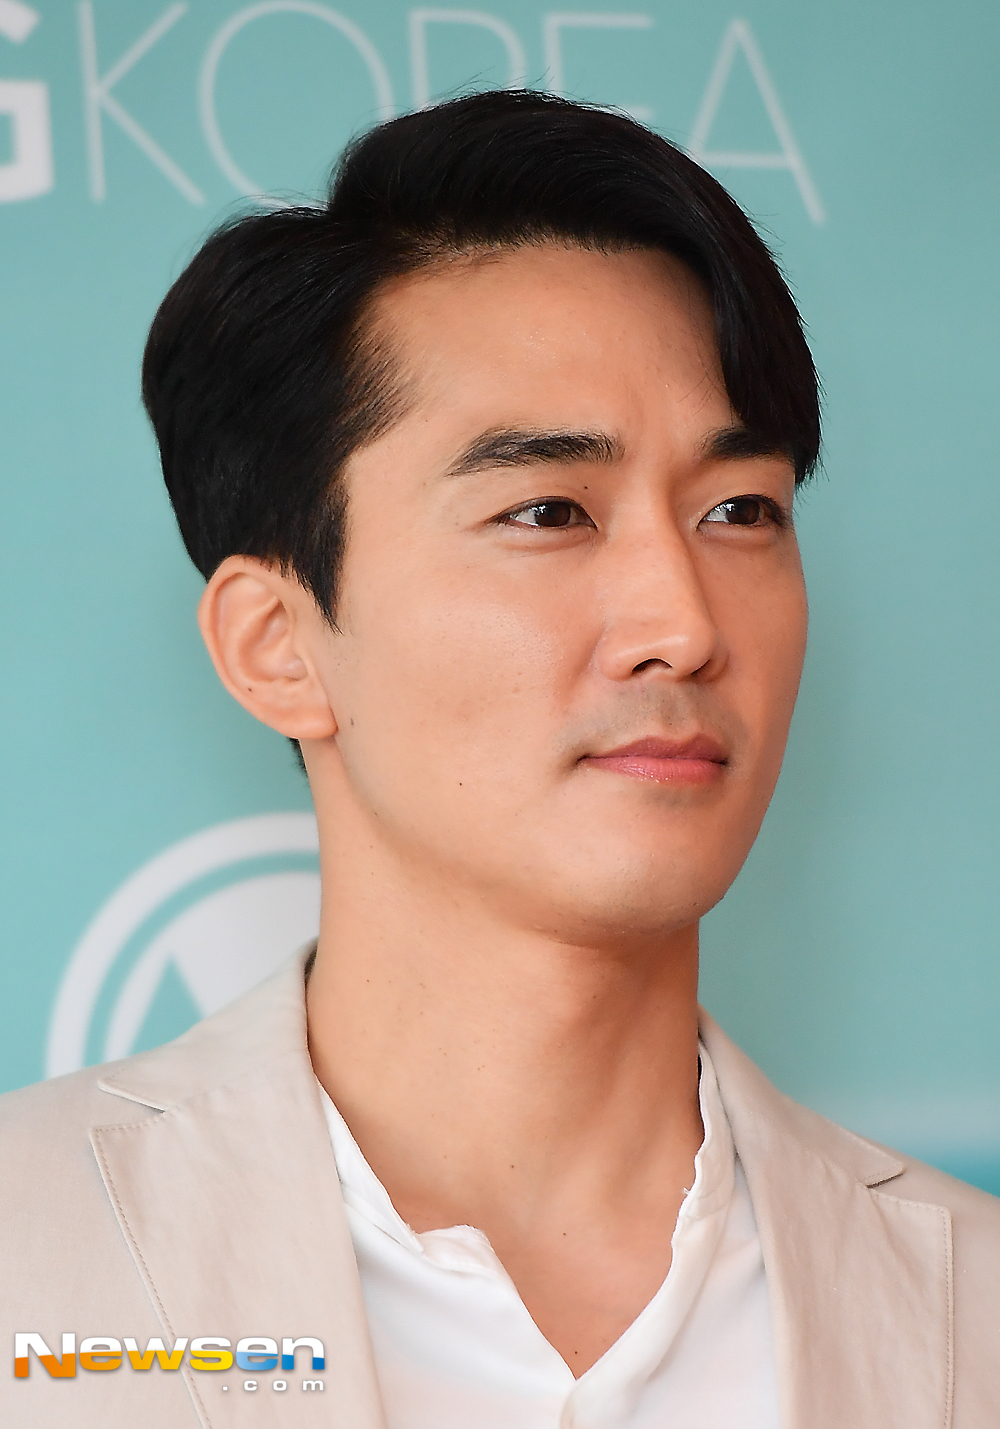 <p>The actor Song Seung-heon participated in the AGKOREA Beauty launch Chugai Travel held at Lotte Hotels & Resorts Charlotte Suite room in Seoul-dong, Seoul morning on September 14th morning.</p><p>Song Seung-heon responds to the photo pose this day.</p><p>Meanwhile, Song Seung-heon is still an actor who is enjoying steady popularity so far as to be listed as the first lady star lover in his 20s and 30s.</p>